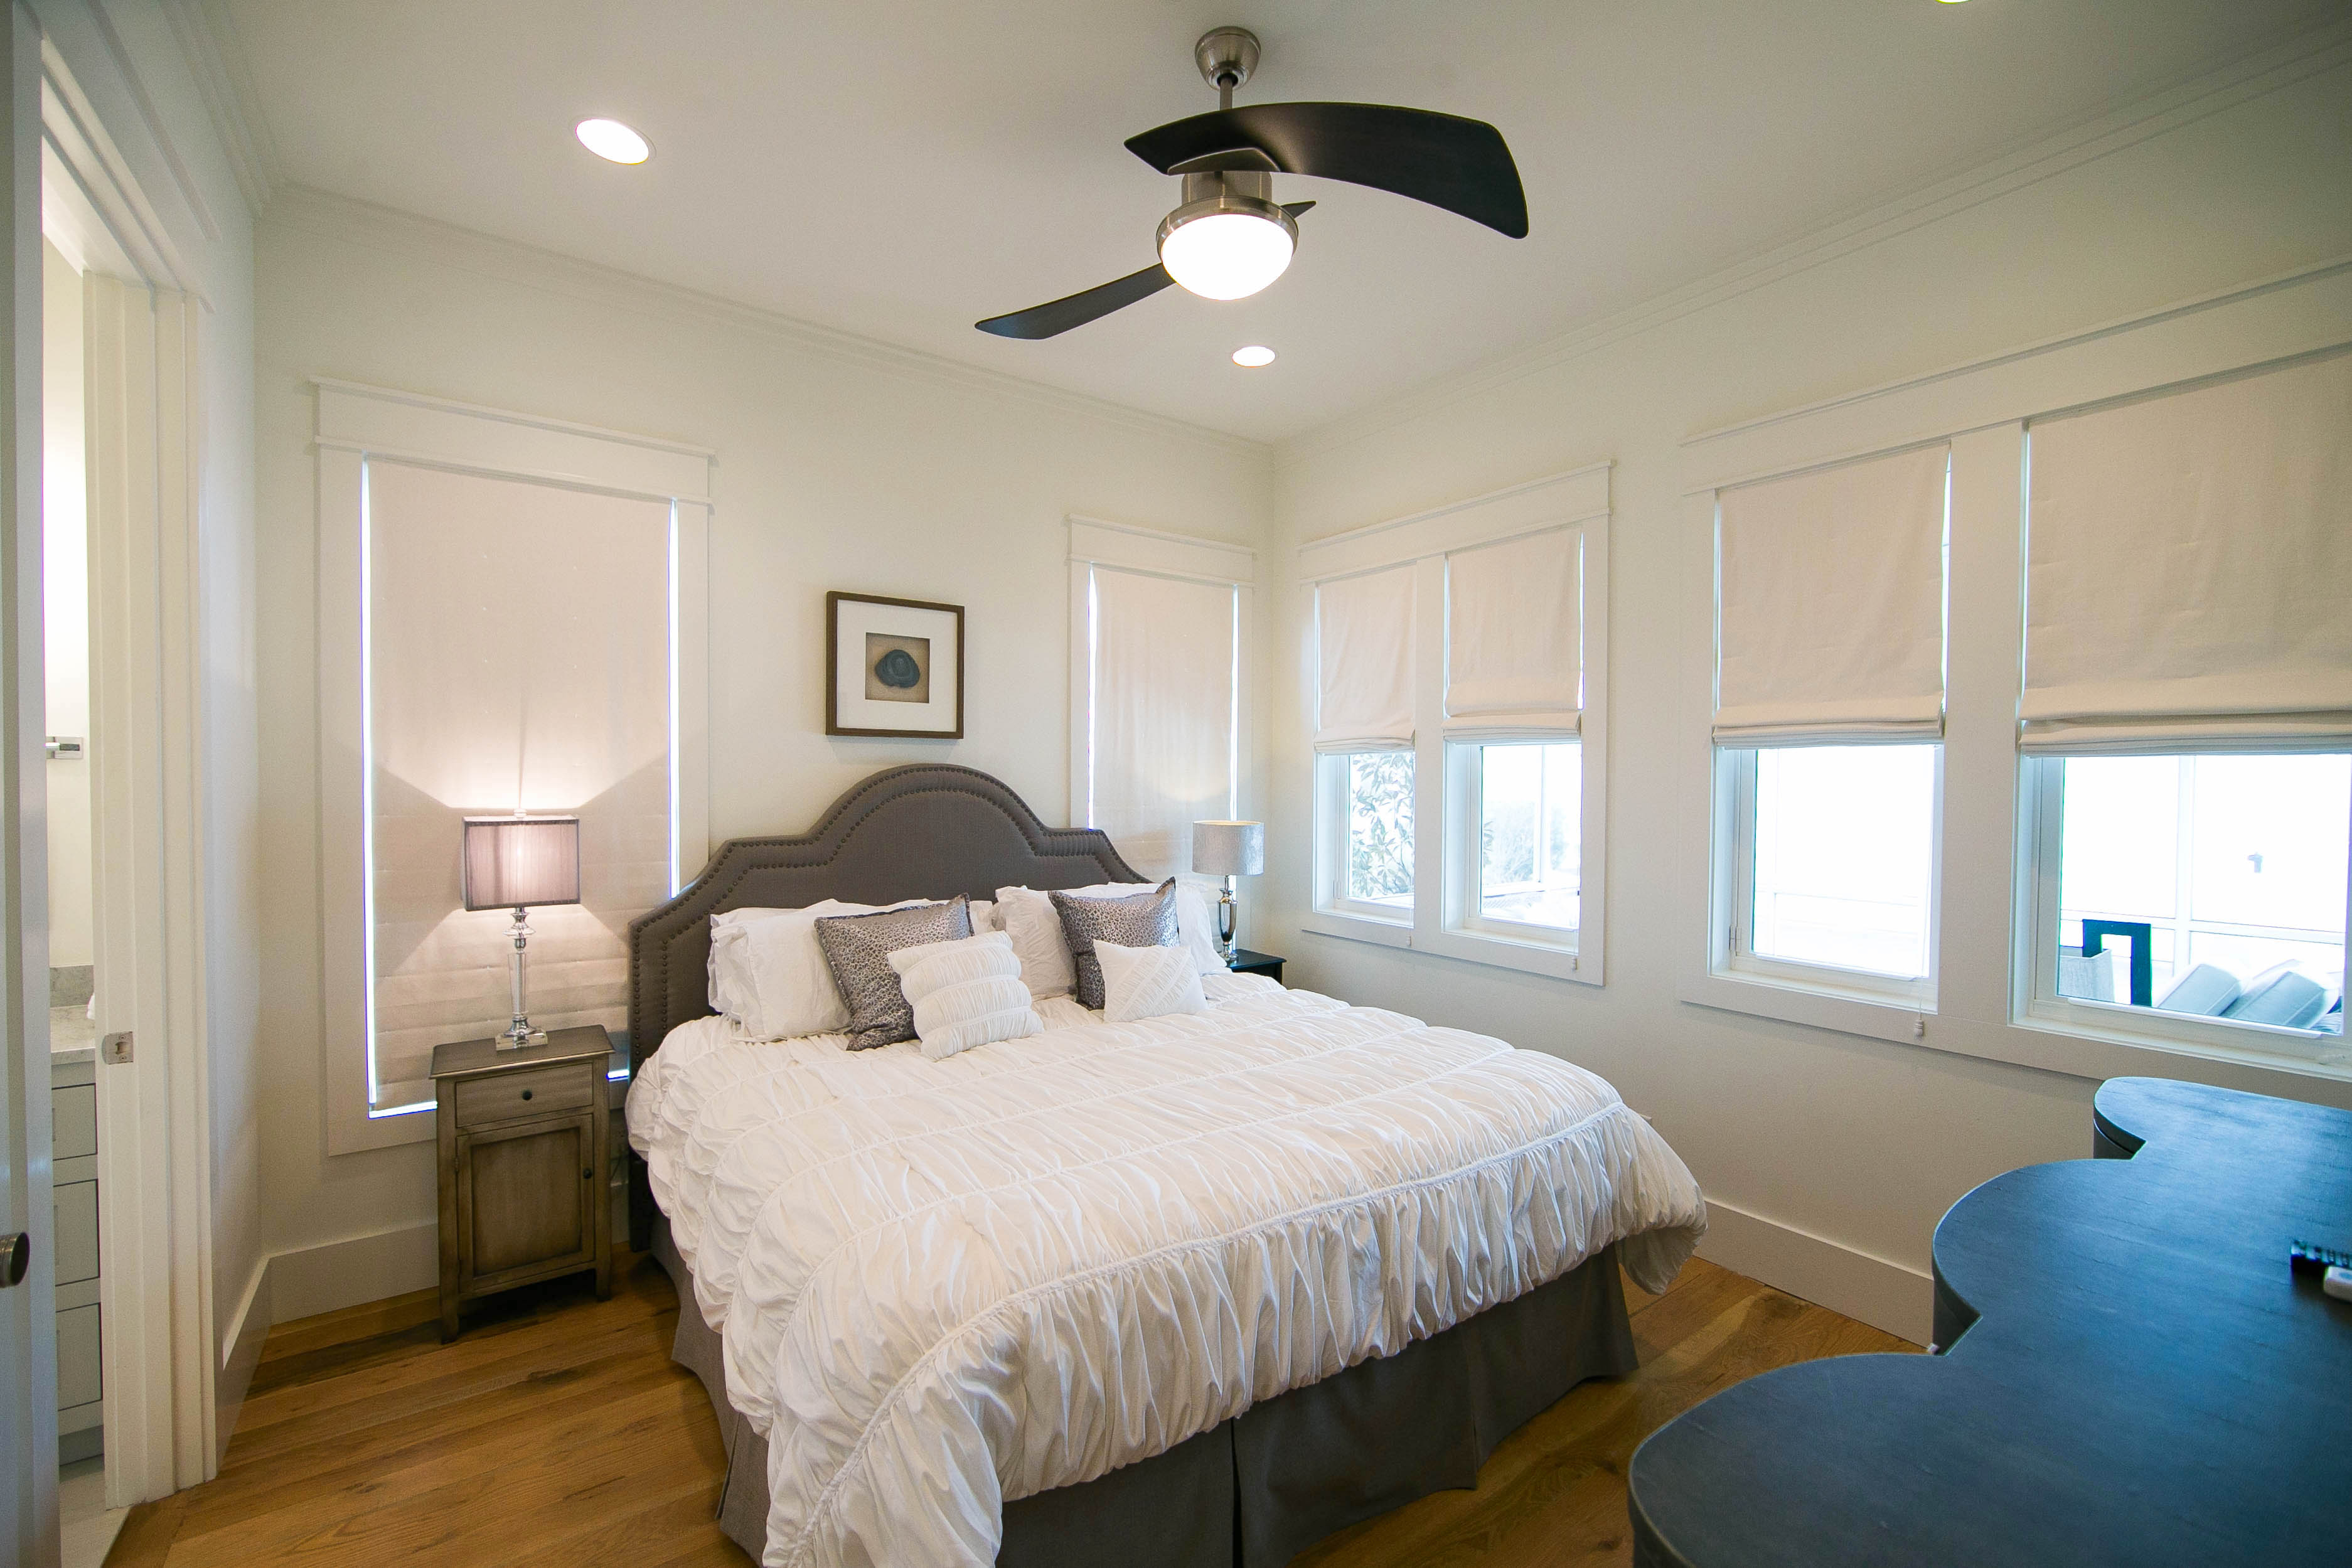 The second guest bedroom is on the first floor and has a king size bed and views of the pool.